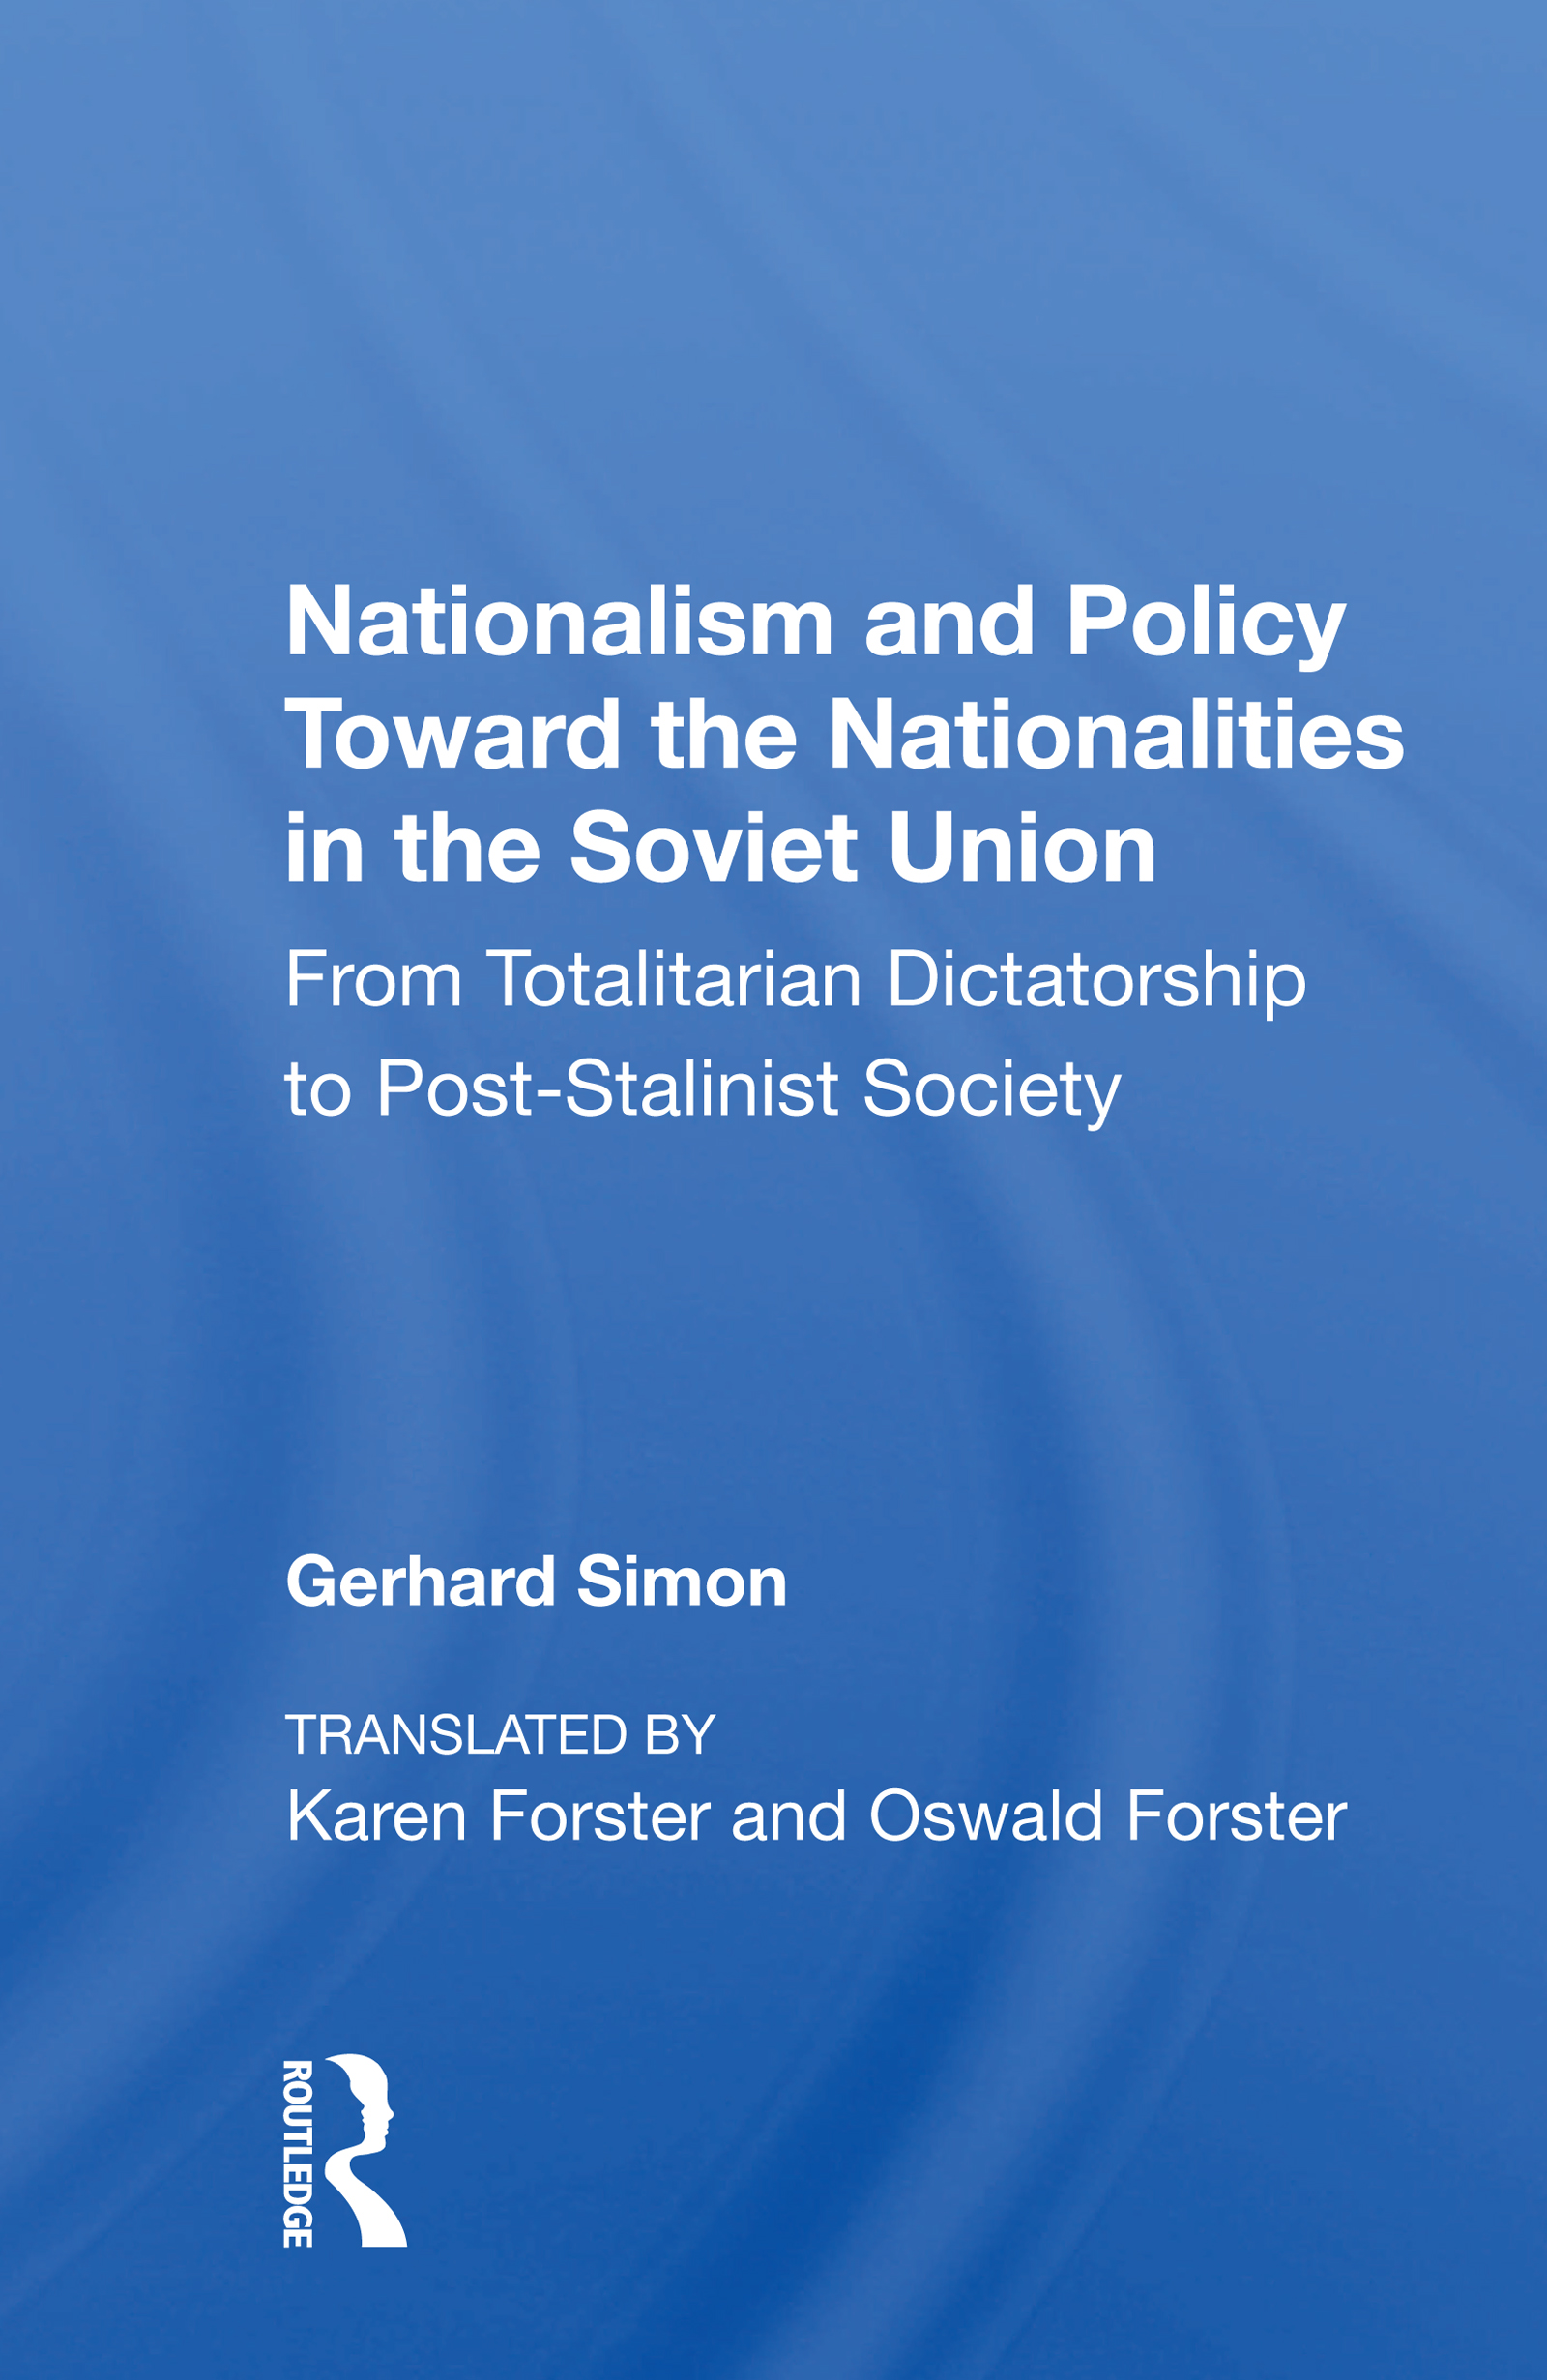 Nationalism and Policy Toward the Nationalities in the Soviet Union